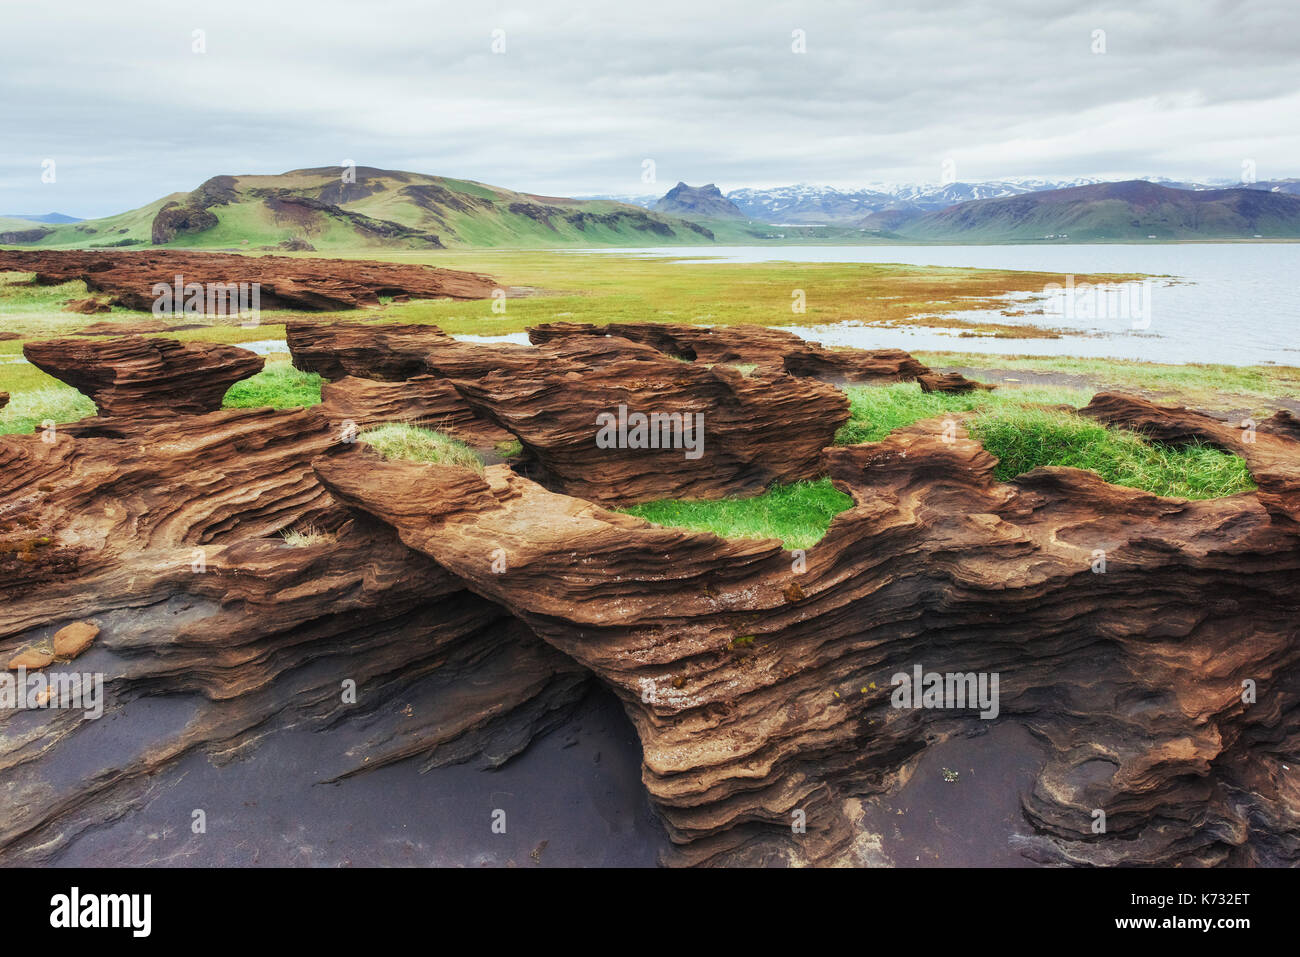 Scenic view of volcanic rocks in Iceland. - Stock Image